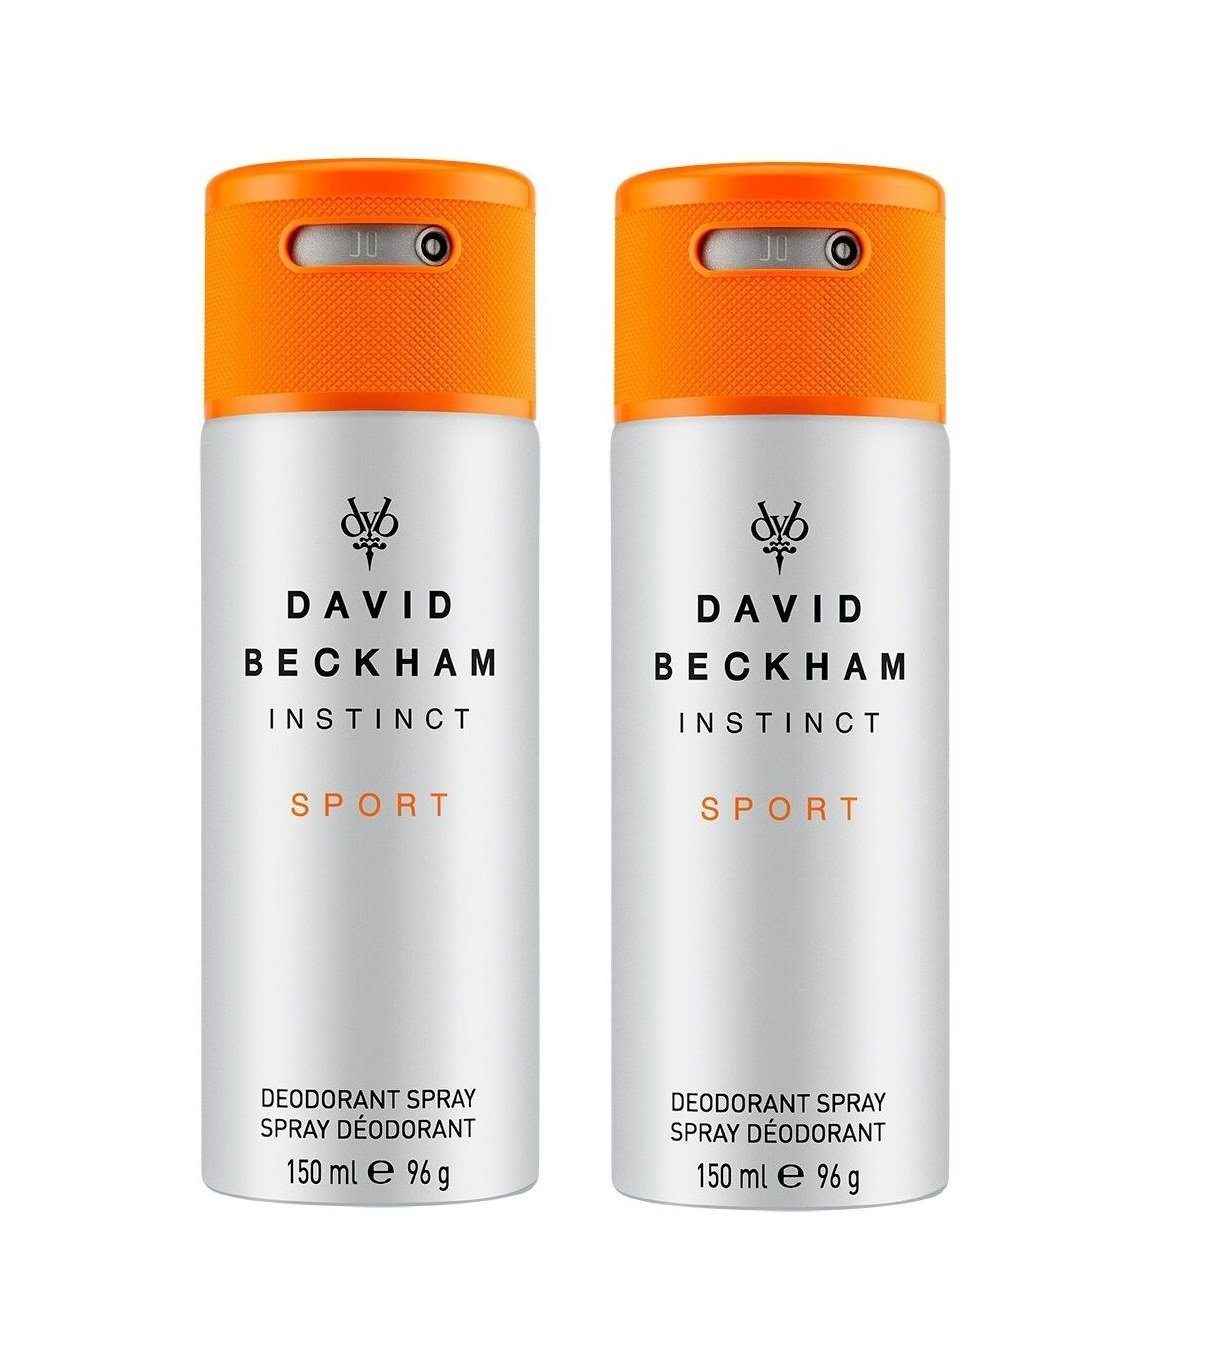 David Beckham - 2x Instinct Sport Deodorant Spray 150 ml